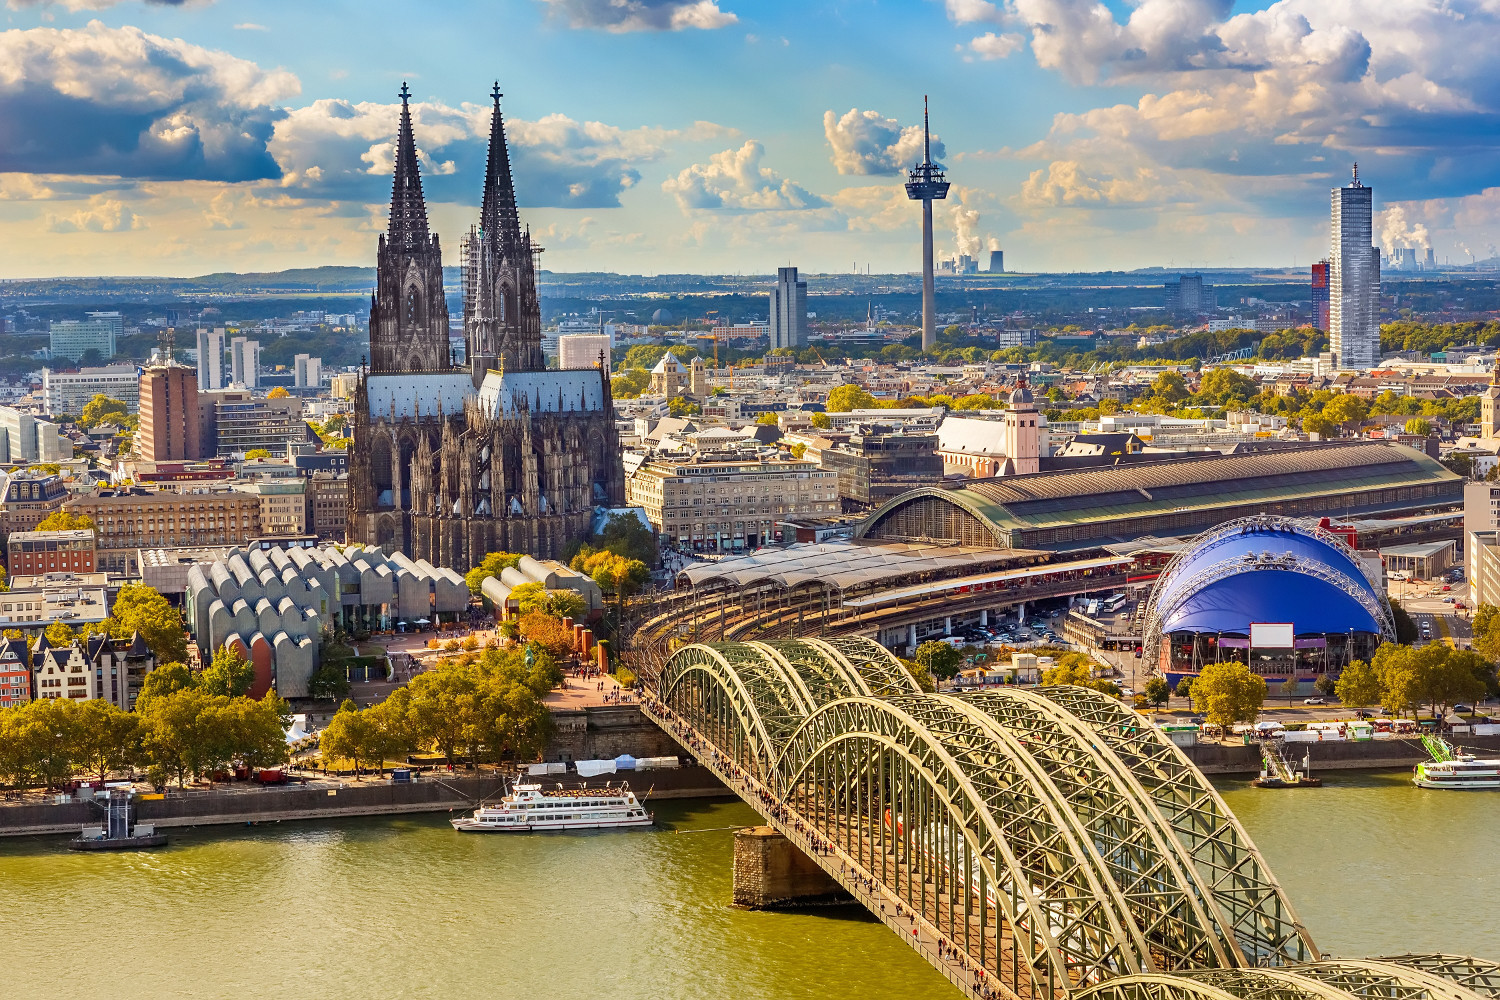 experience a cologne allemagne erica d4237a8d6f535d4f852efd92d1fed6b6